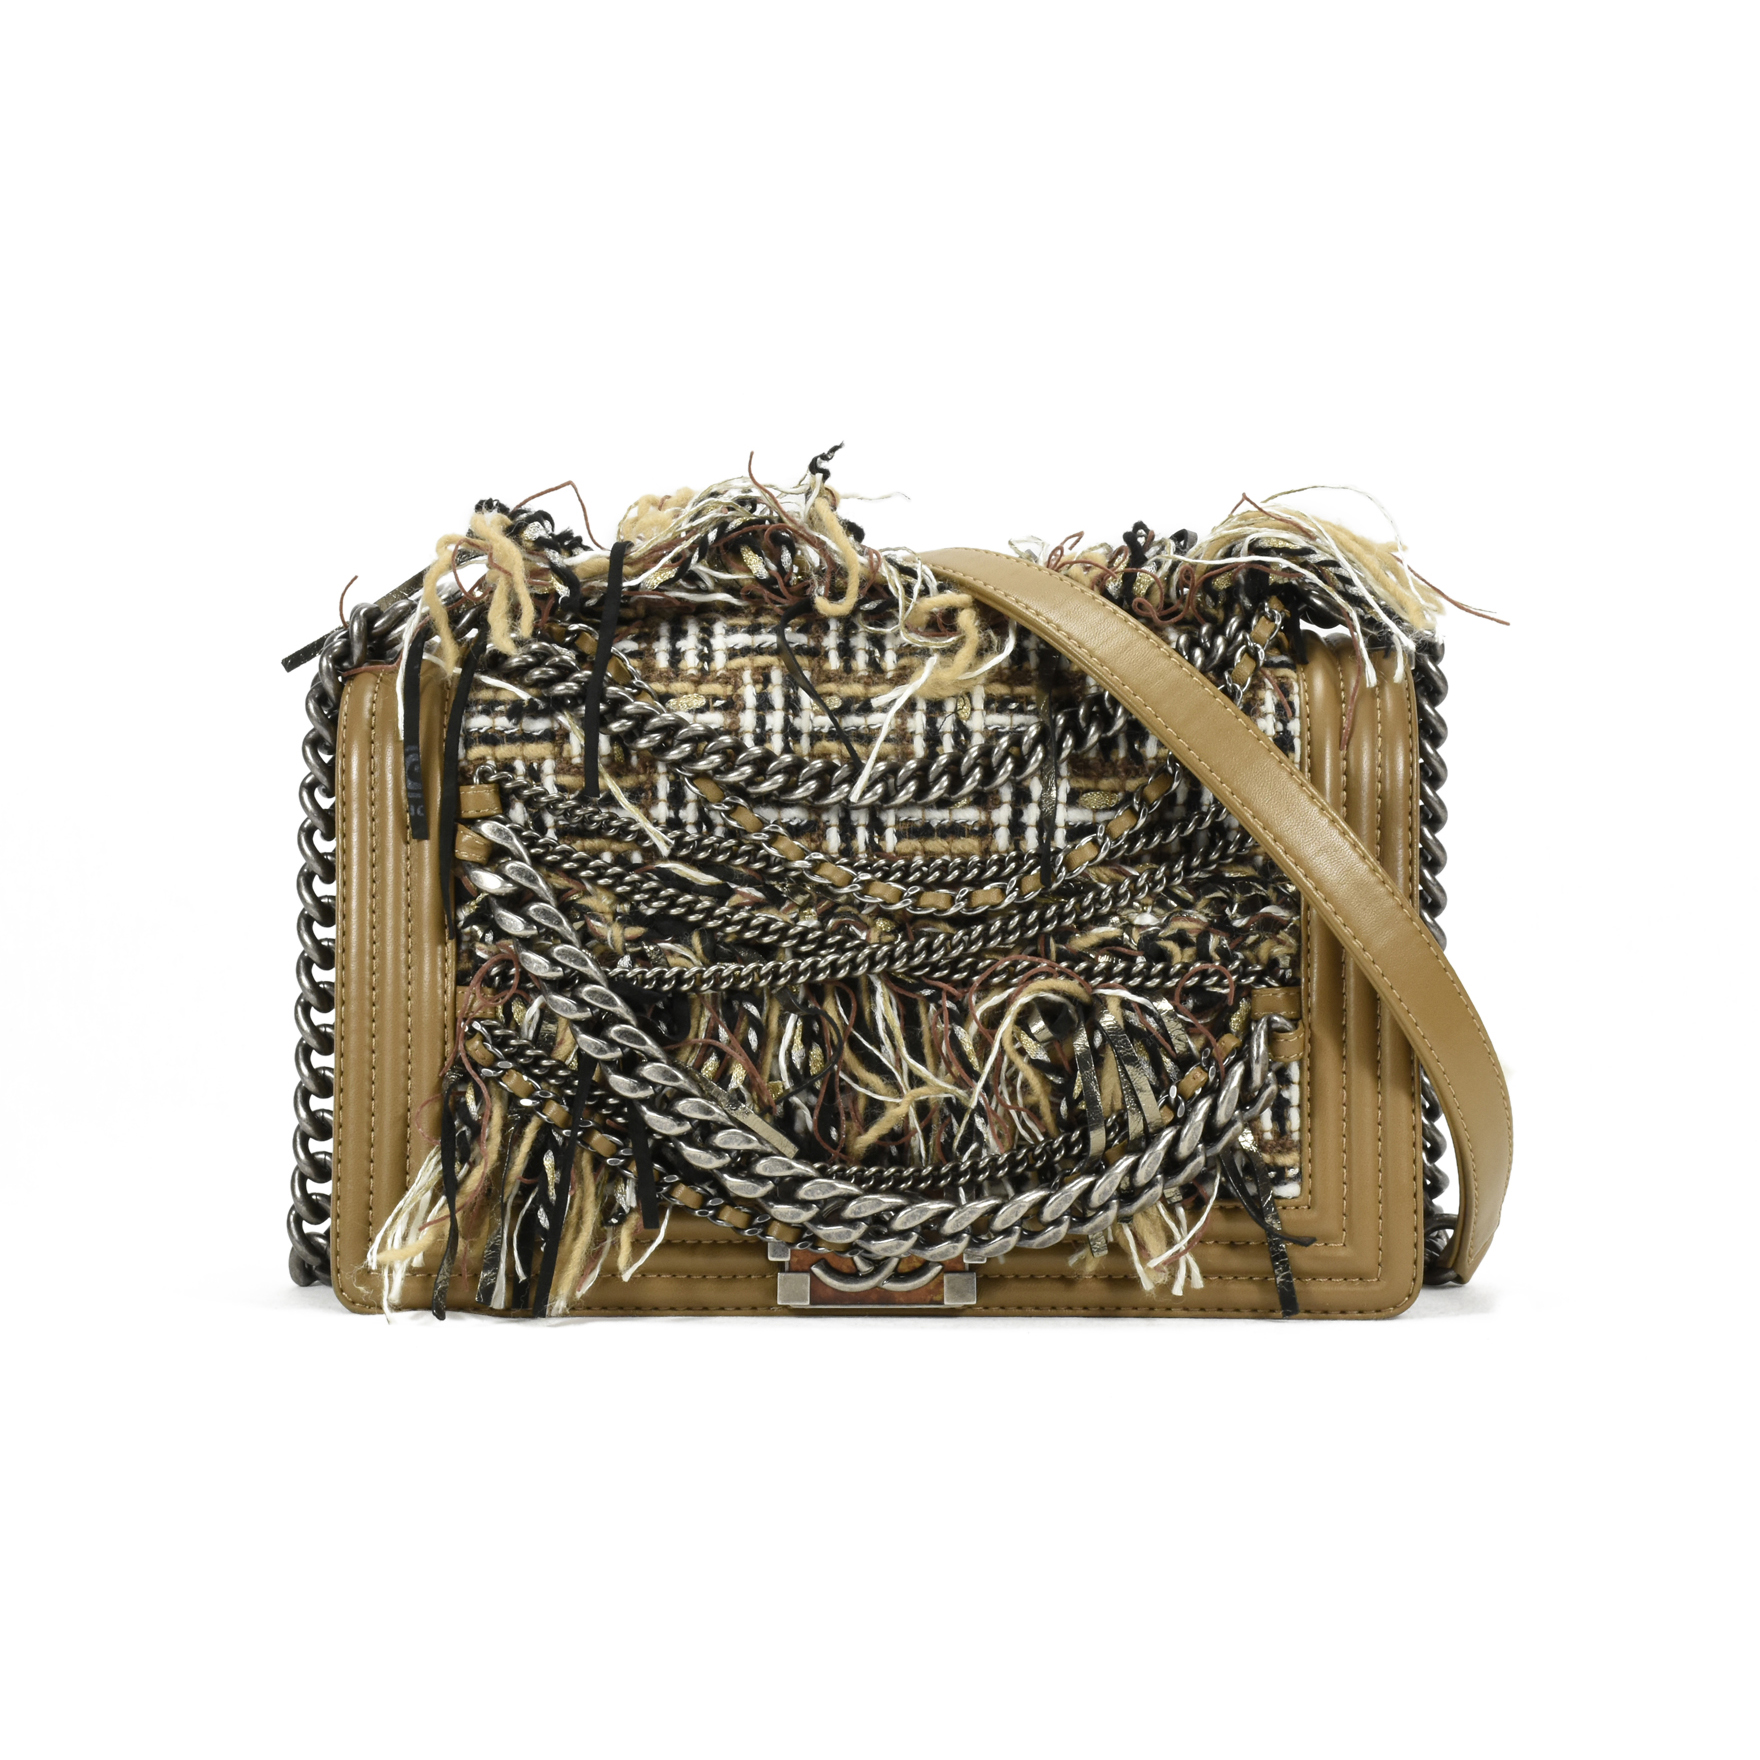 dc7f19f52a3c Authentic Second Hand Chanel Paris Dallas Enchained Fringe Boy Bag  (PSS-200-00986) | THE FIFTH COLLECTION